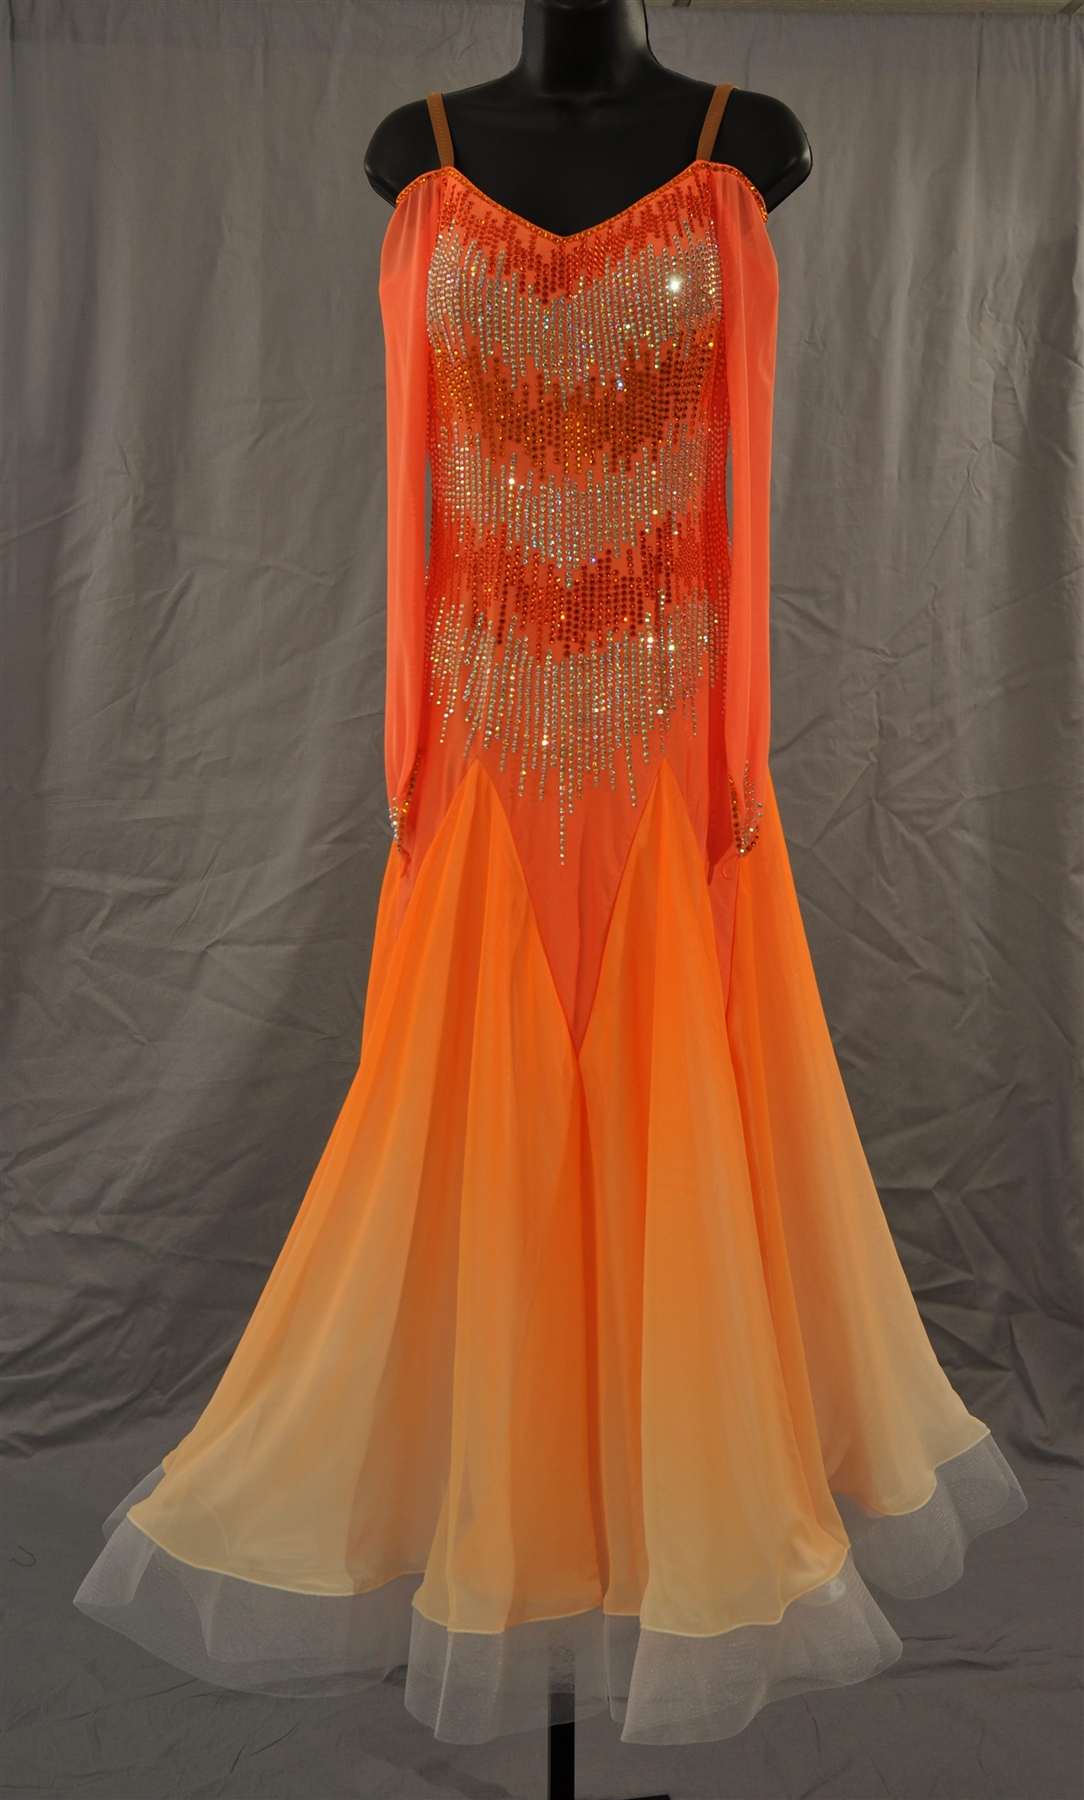 Dyed Orange Ballroom Dress